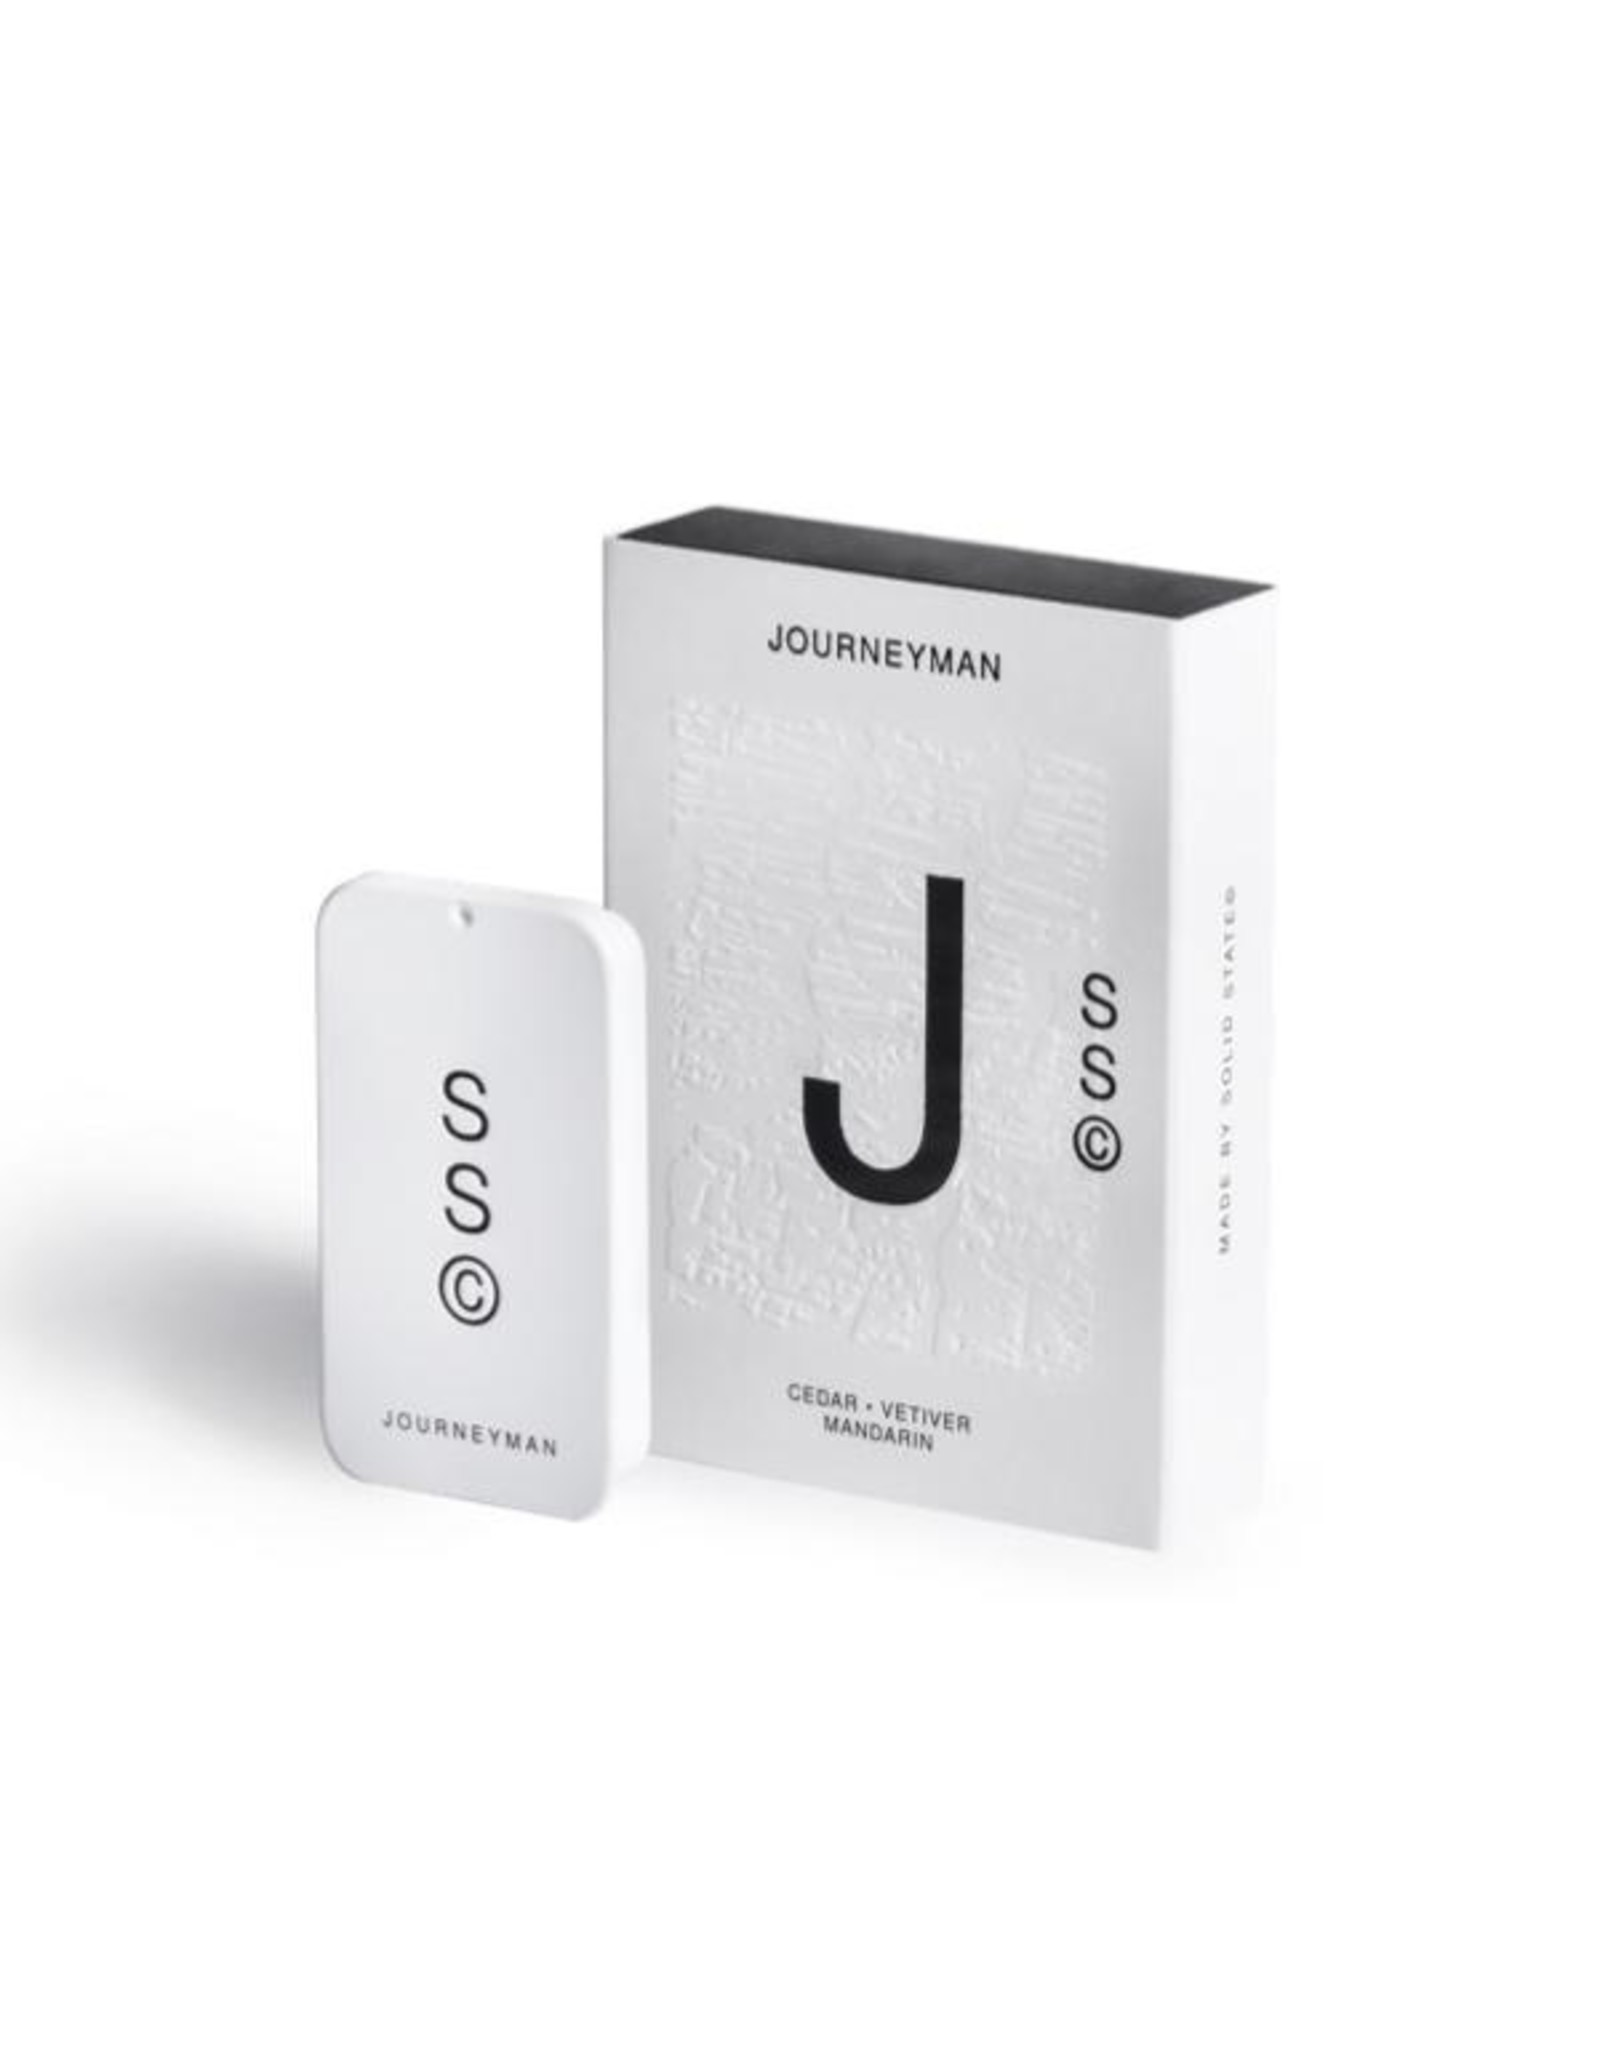 Solid State Journeyman Cologne